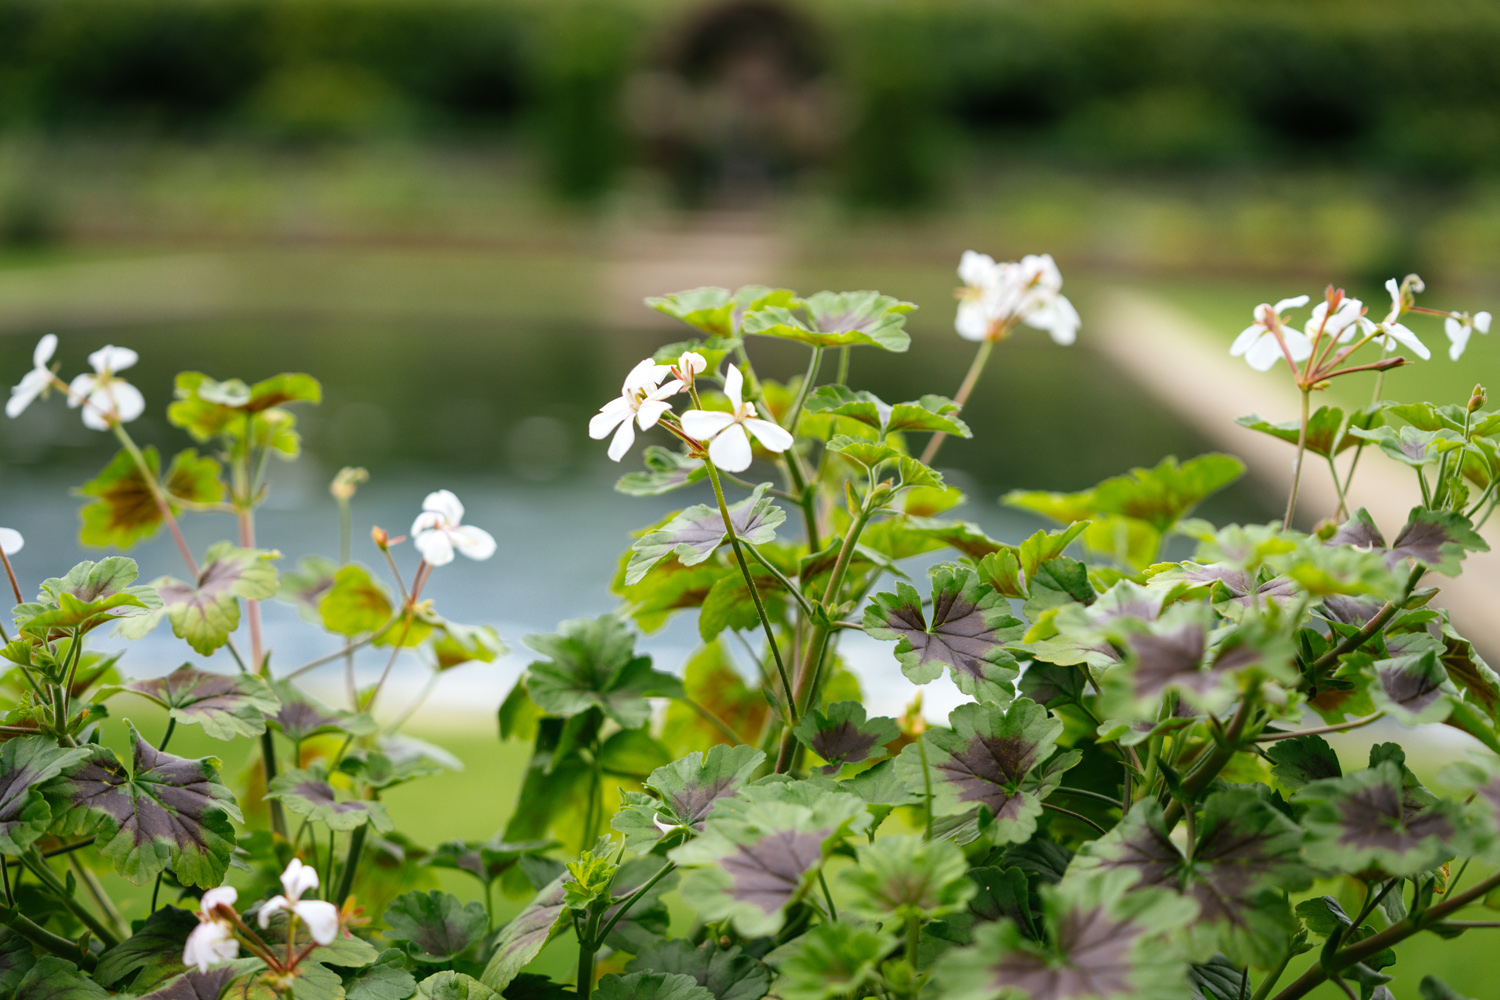 The newly redesigned Sunken Garden at Kensington Palace